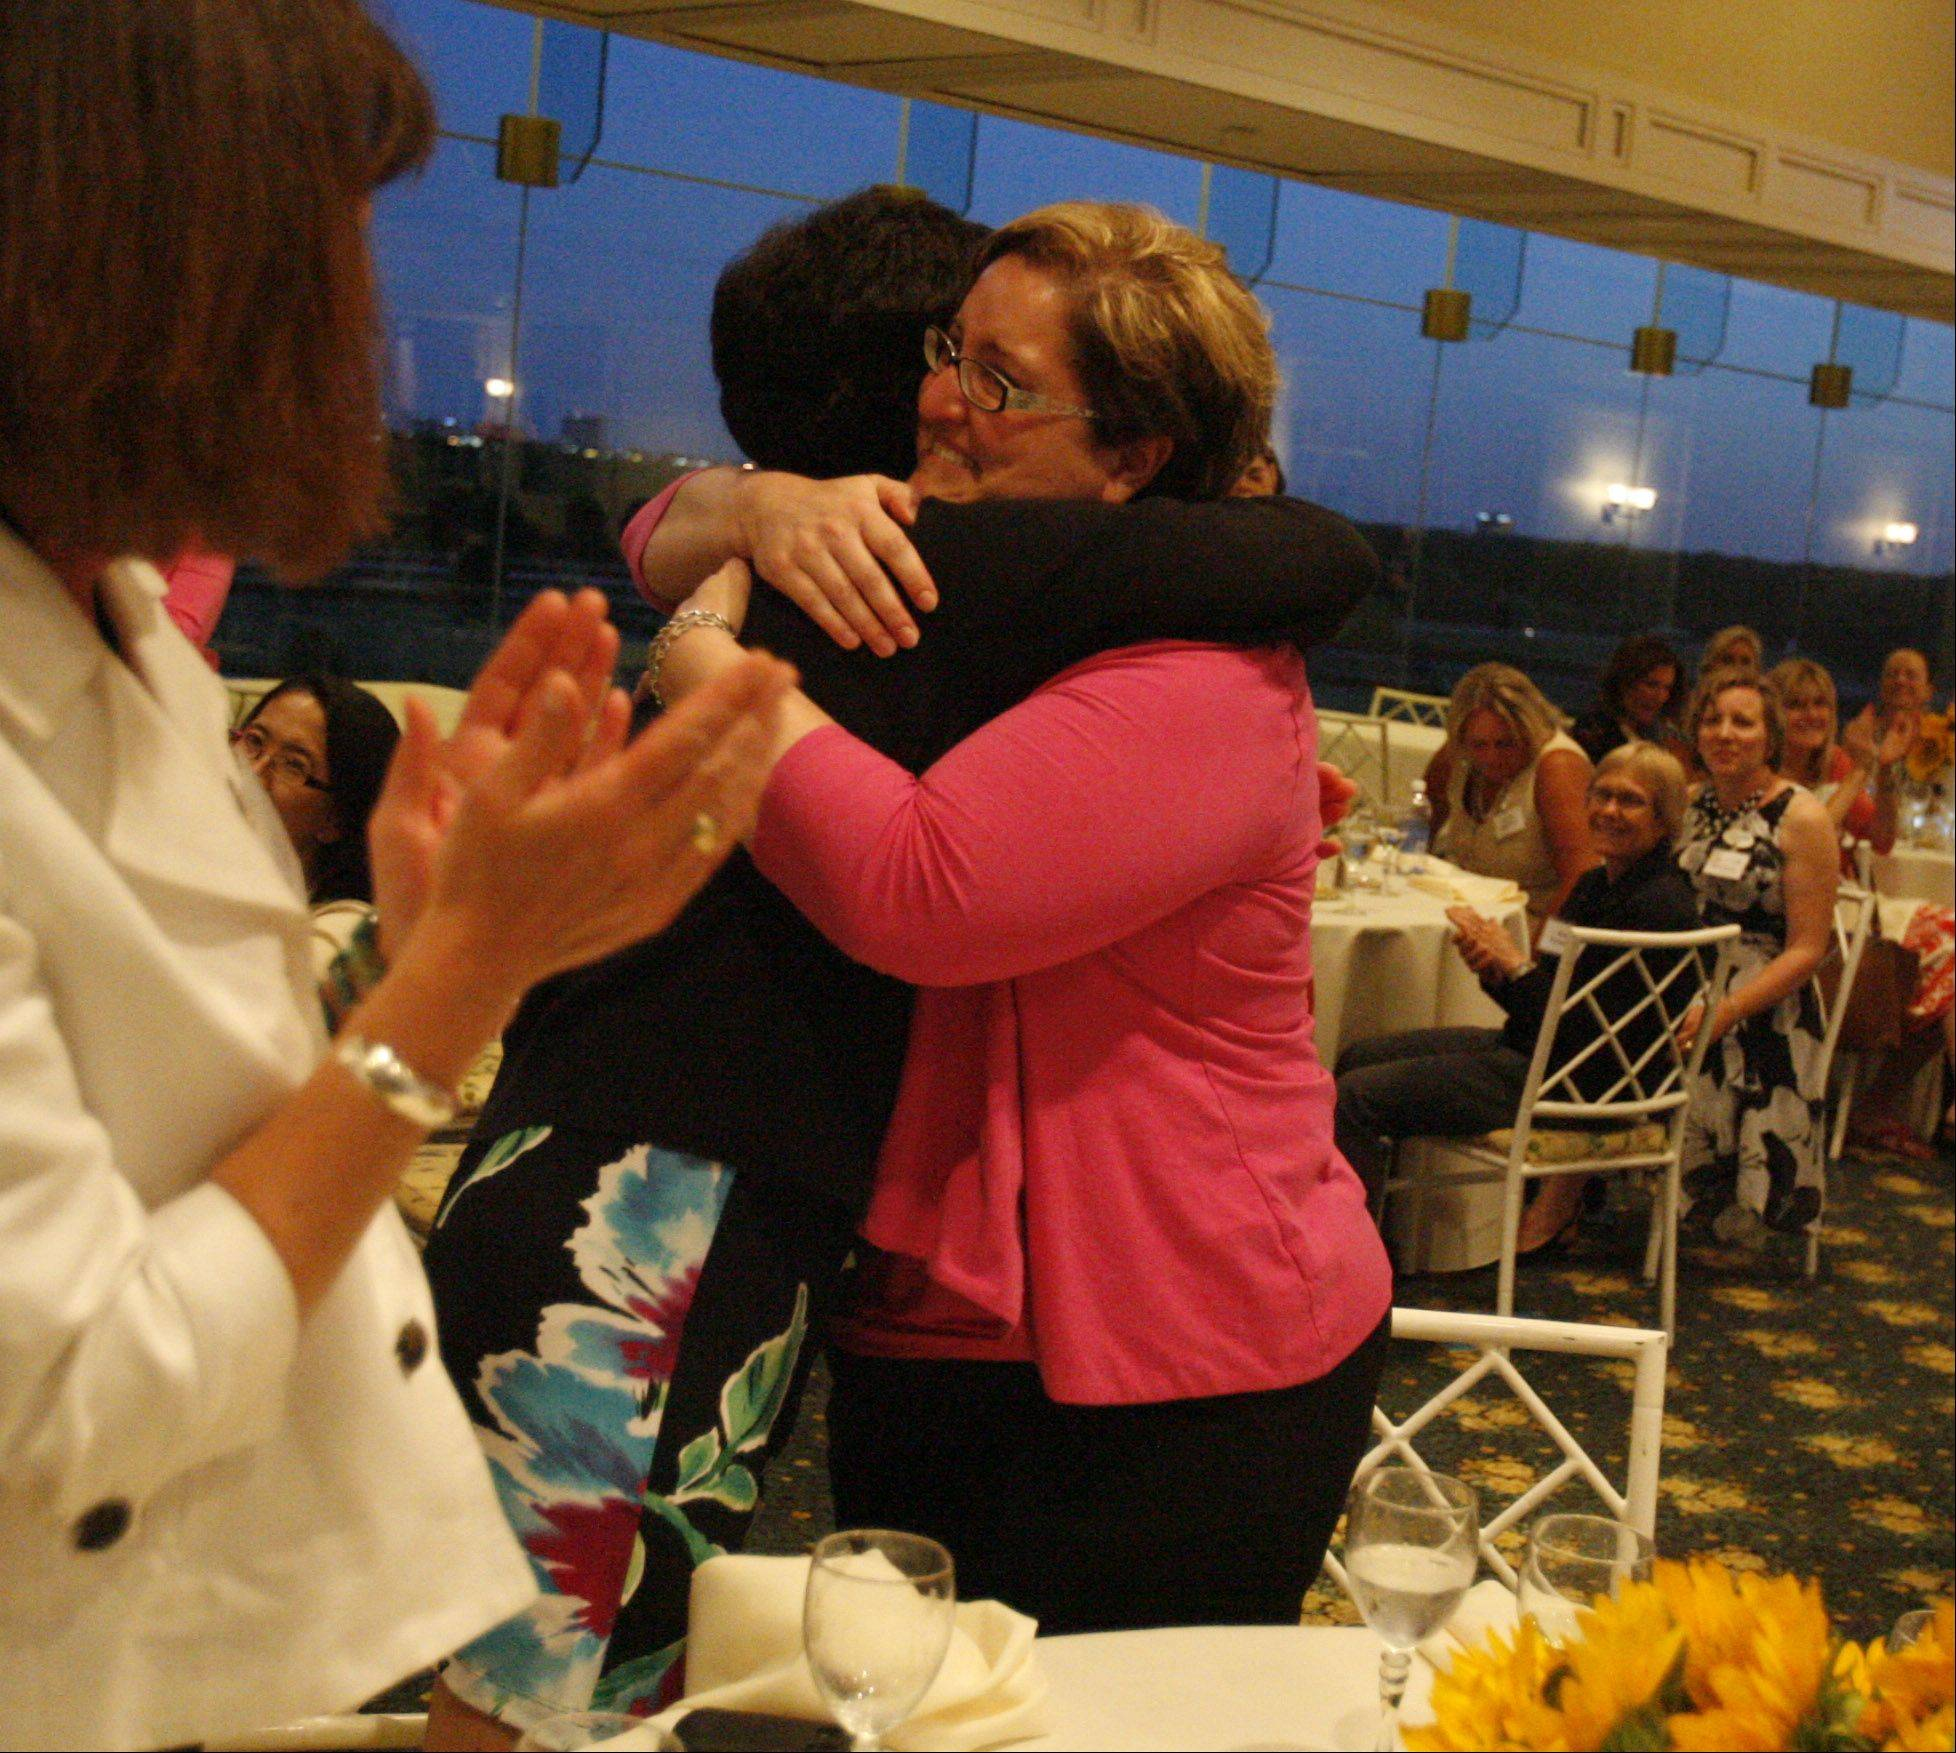 Noelle Moore, right, director of development for A Safe Place, gets a hug from Jean Spiegelhalter after an announcement that the organization was awarded $100,000 from Impact 100 Chicago, a philanthropic women´s organization, at a gala at Arlington Park in Arlington Heights on Tuesday. 142 women each made a tax-deductible donation of $1,000. The funds are pooled to create a $100,000 grant and three $14,000 finalist grants.